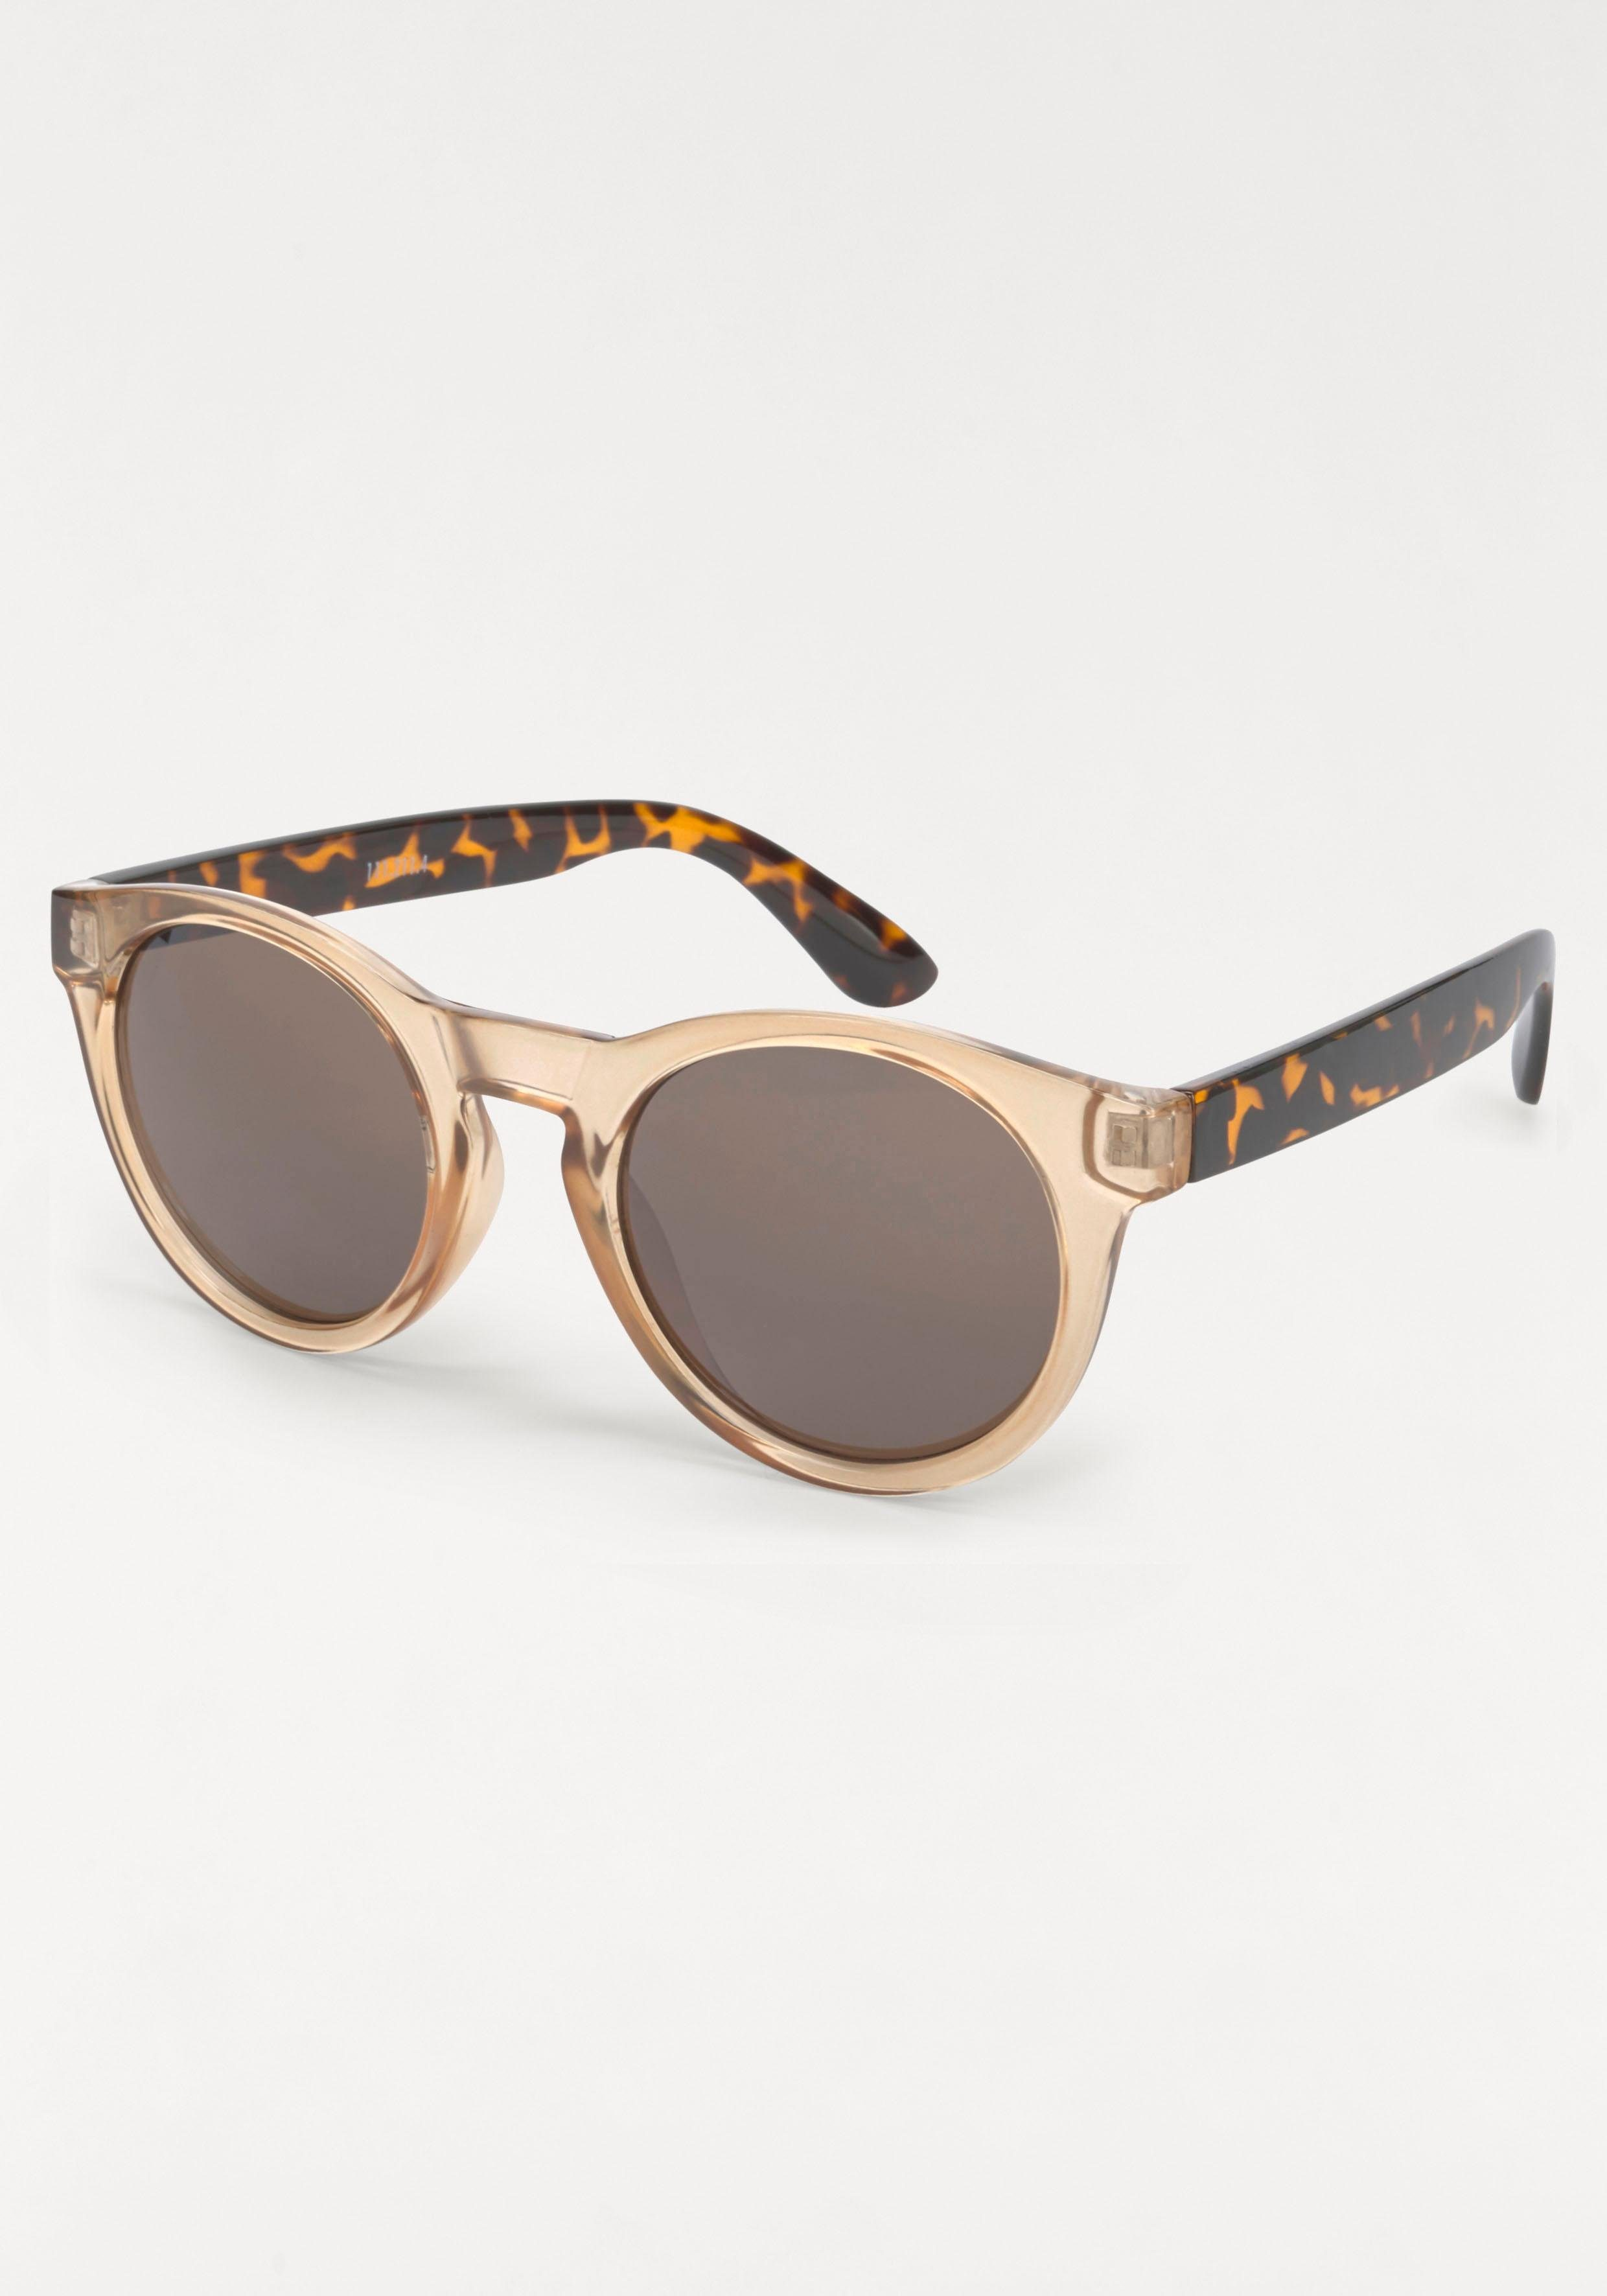 YOUNG SPIRIT LONDON Eyewear Sonnenbrille in Bicolor-Optik, Bügel Animal Print